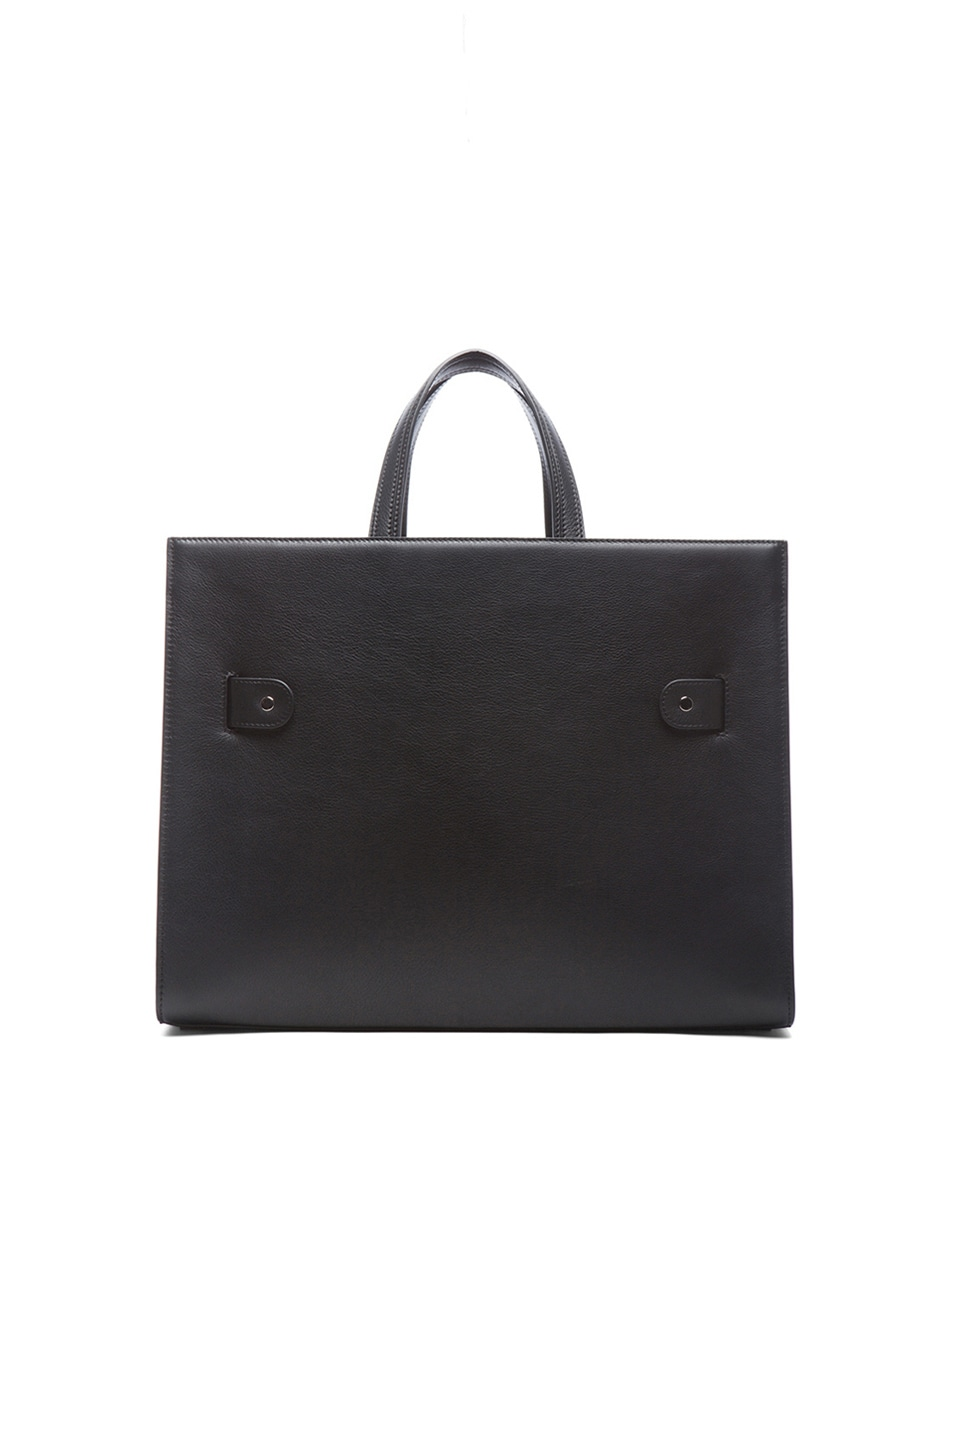 Image 2 of Proenza Schouler Large PS11 Tote in Black